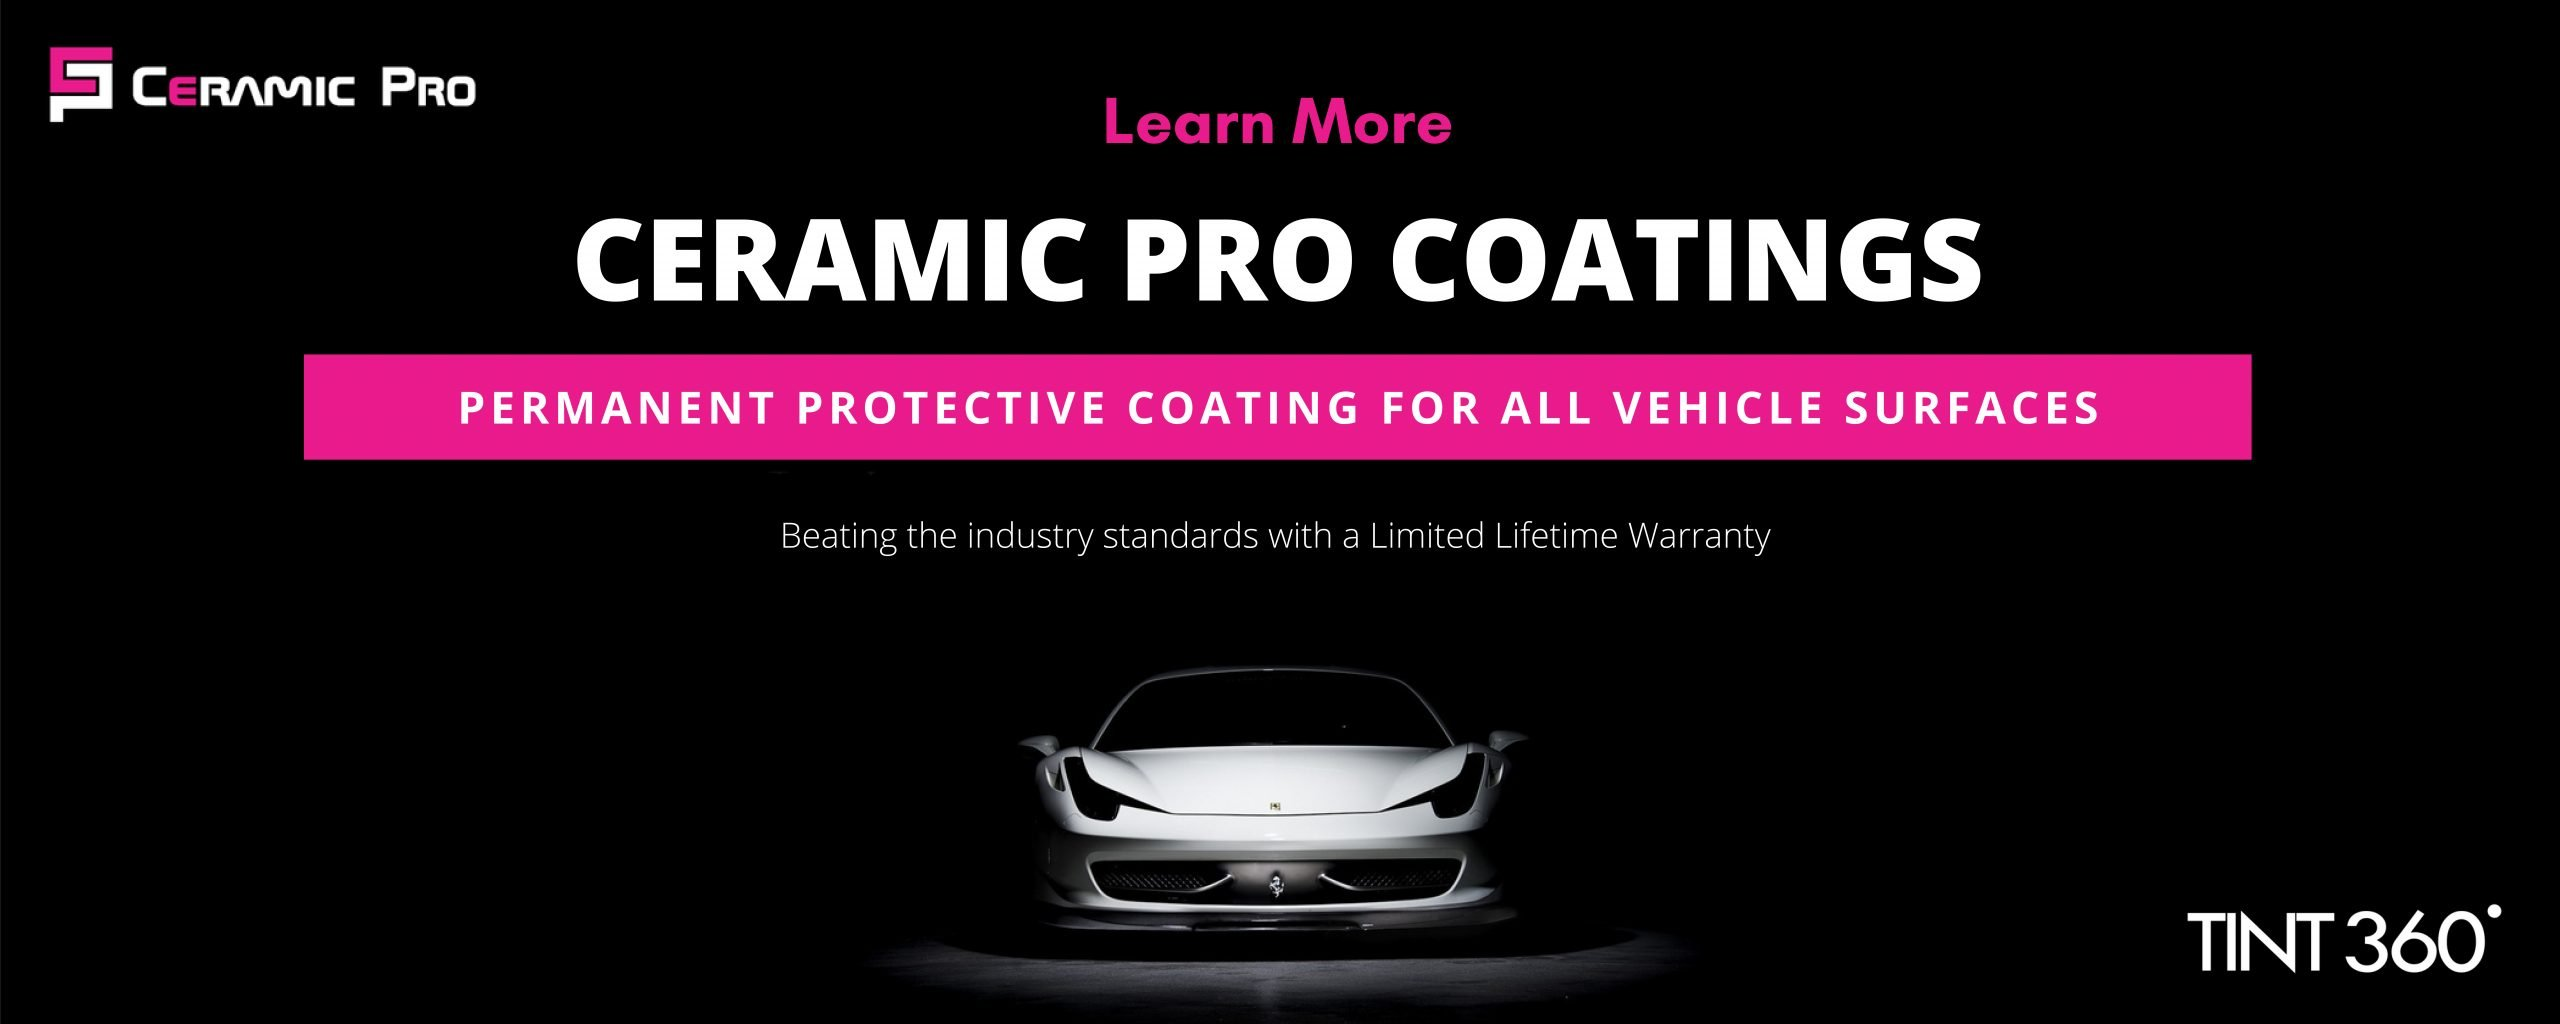 Permanent Protective Ceramic Coating for All Vehicle Surfaces